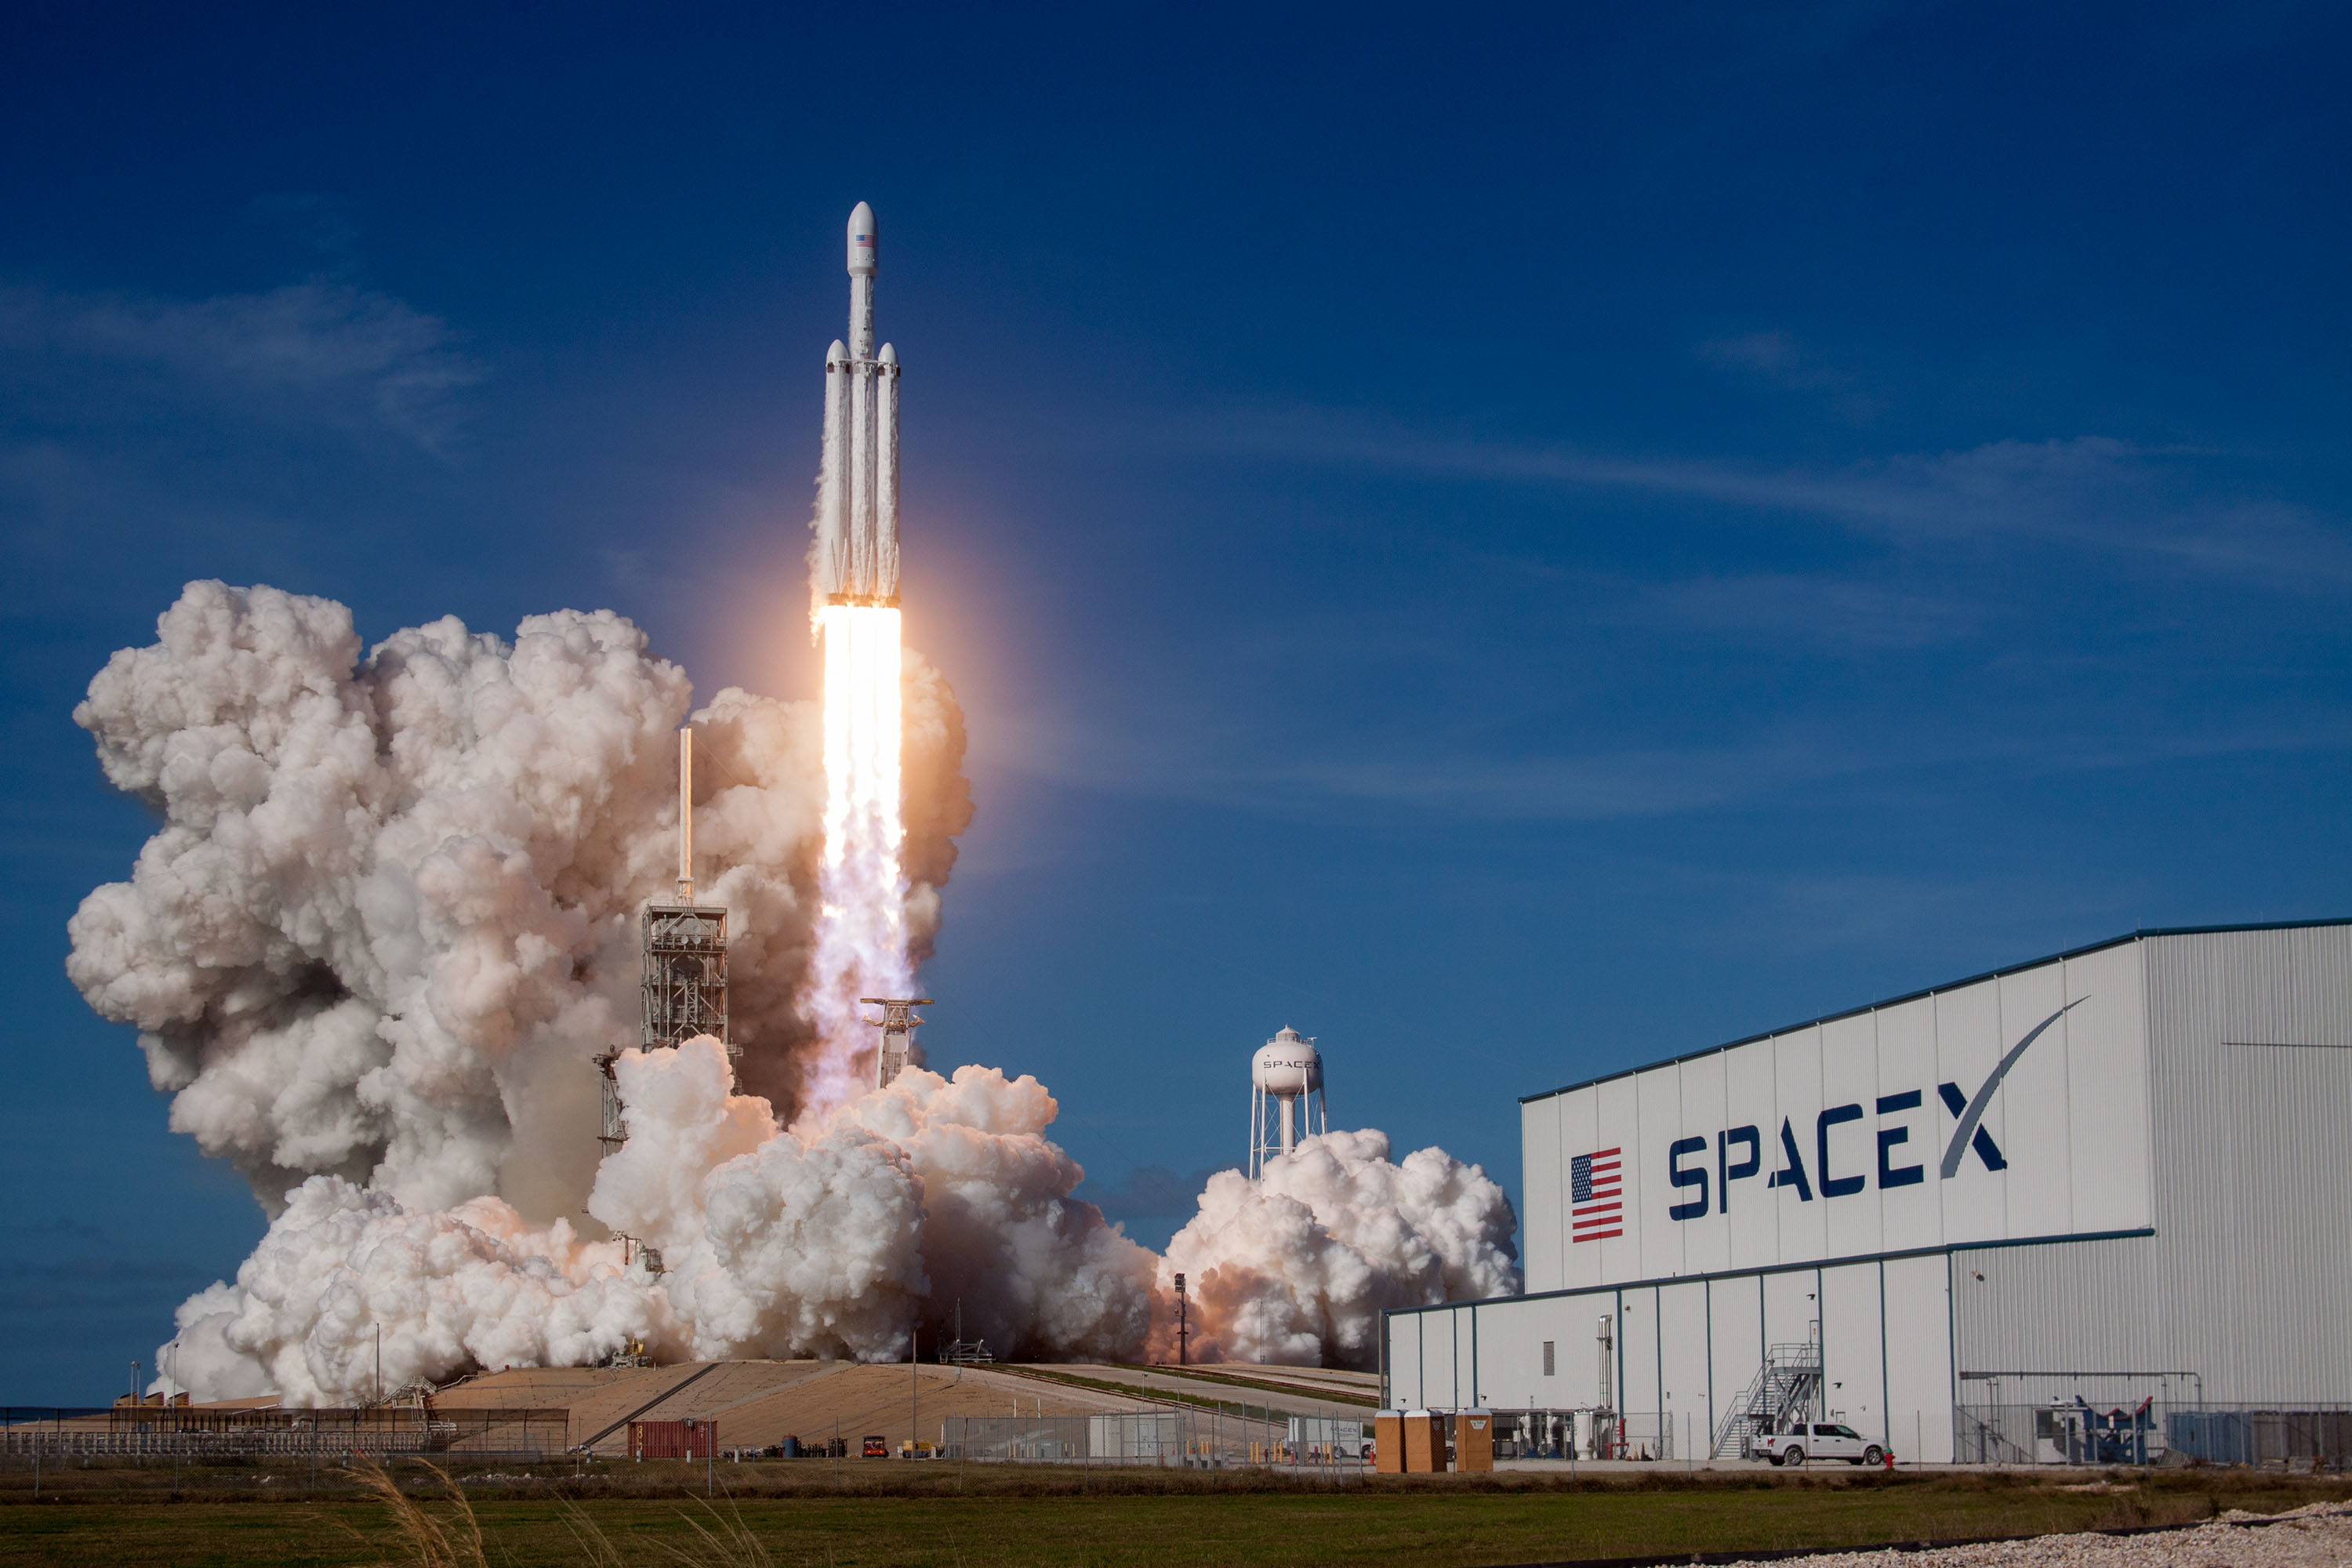 Falcon Heavy liftoff from 39A (SpaceX)